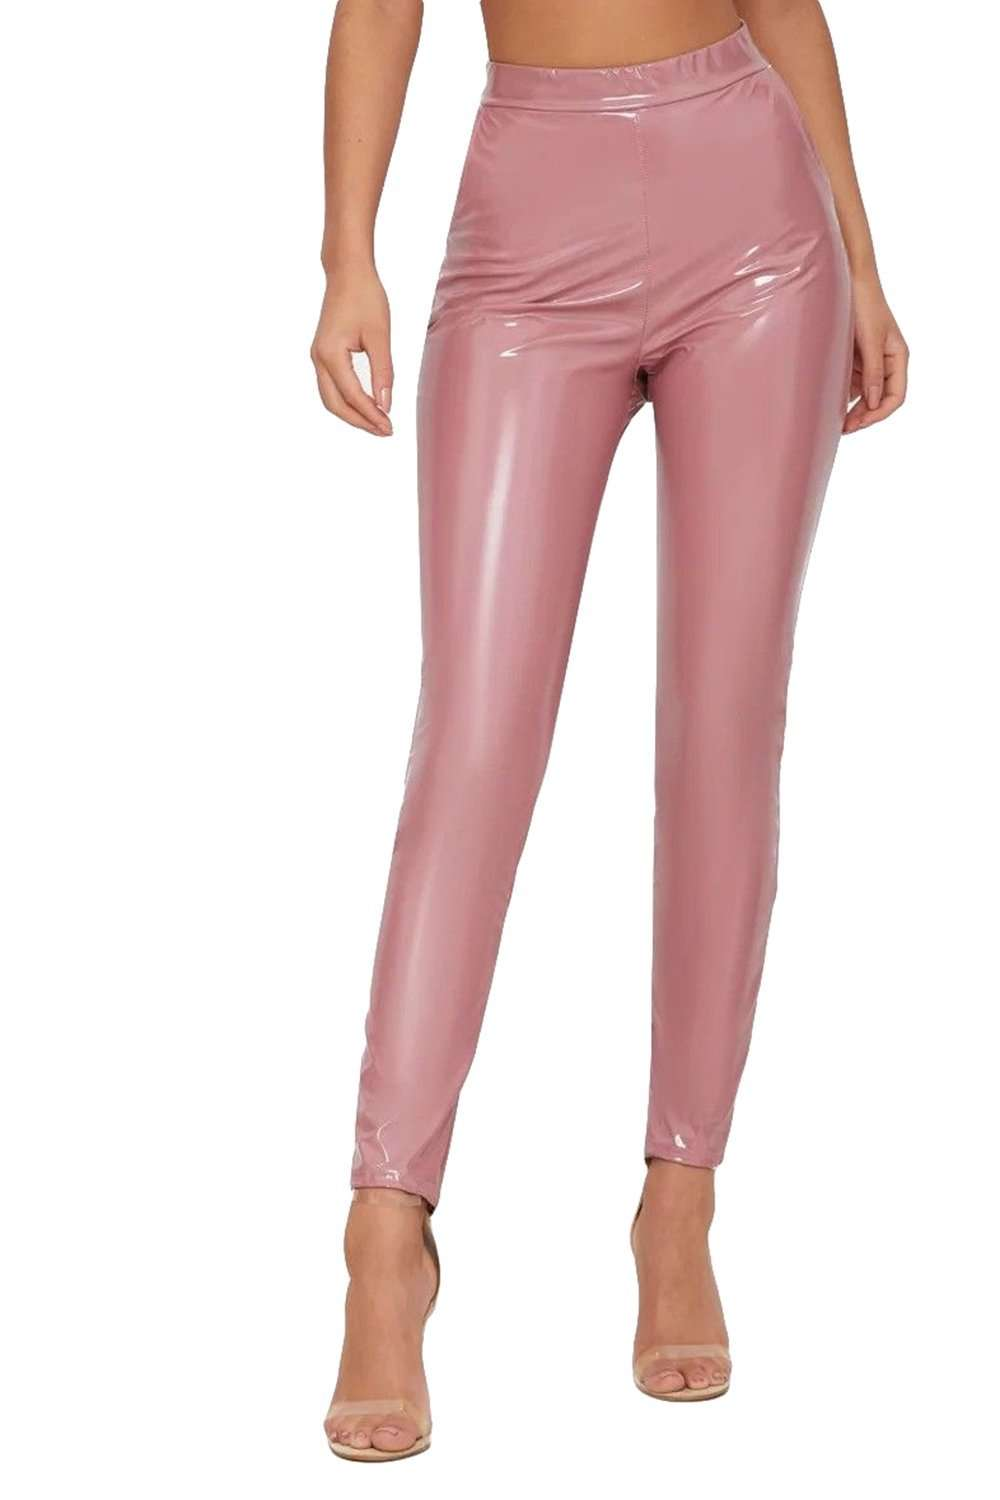 Millie High Waisted Faux Vinyl Leggings - bejealous-com